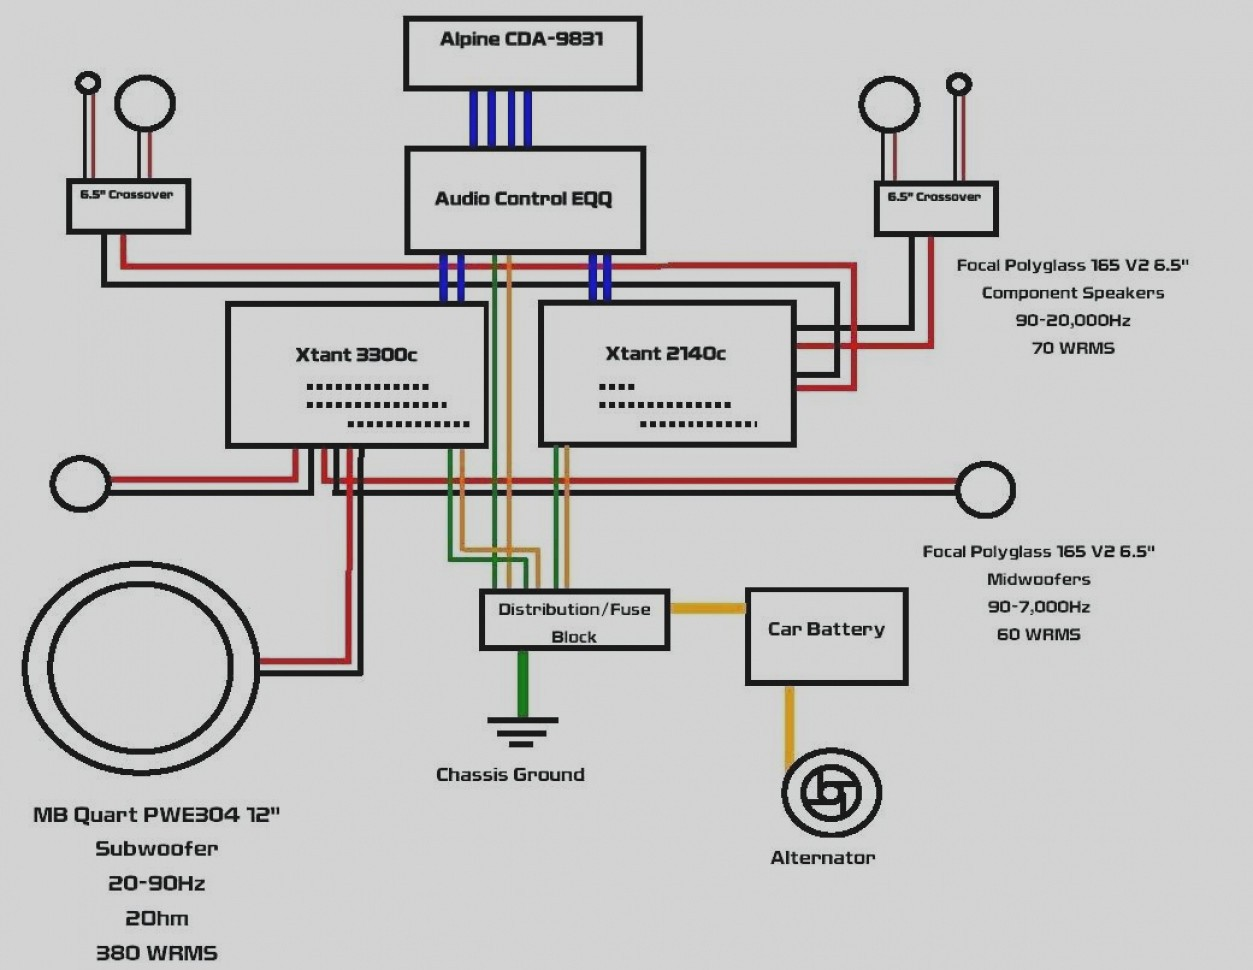 [SCHEMATICS_4FD]  HA_0742] Electrical Wiring Diagrams Alpine Iva D310 Wiring Diagram Vt  Download Diagram | Alpine Iva 800 Car Stereo Wiring Diagram |  | Apom Hendil Norab Props Ntnes Vira Mohammedshrine Librar Wiring 101